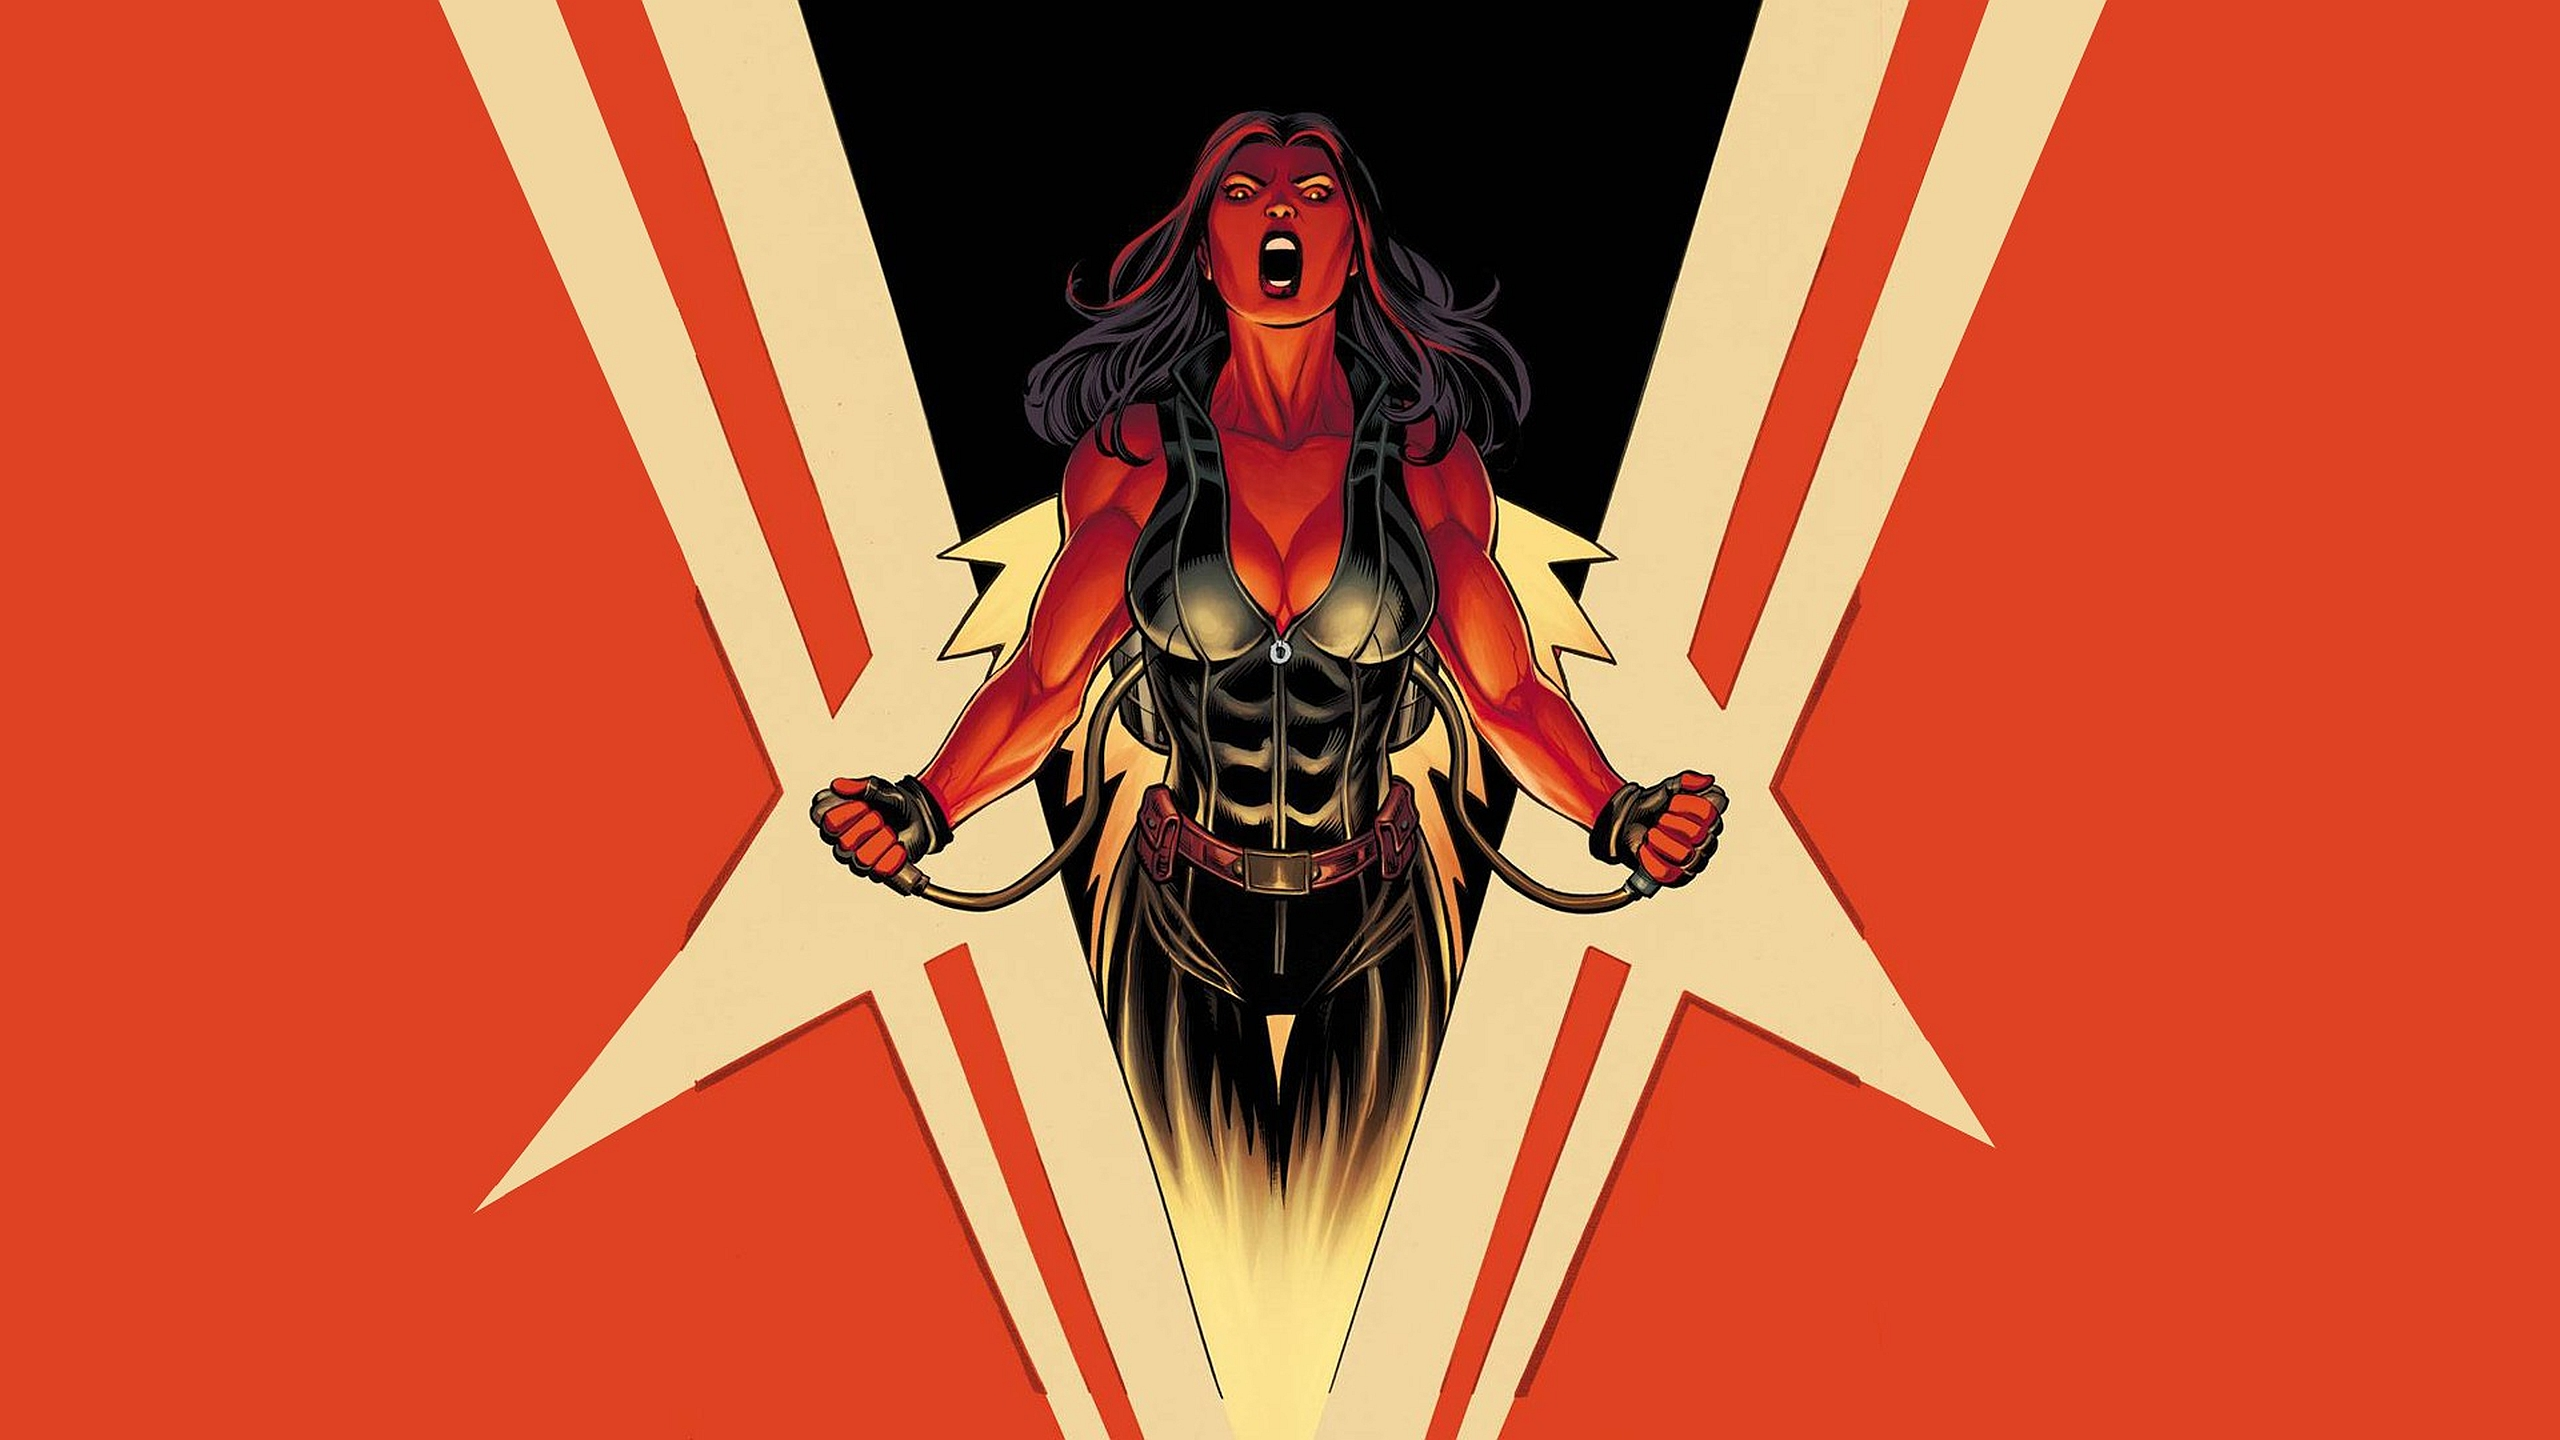 Red She Hulk Computer Wallpapers Desktop Backgrounds 2560x1440